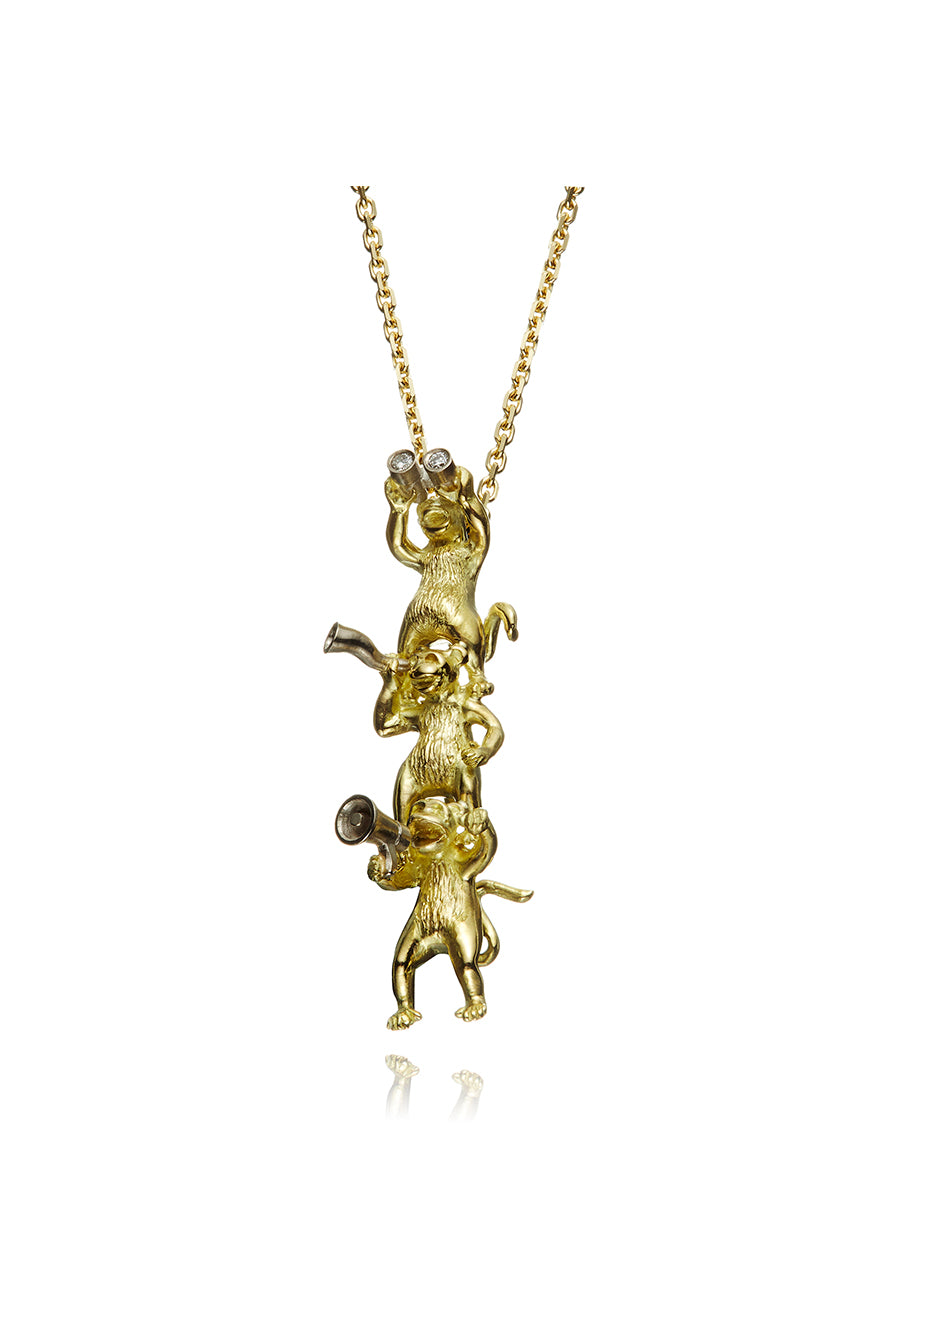 The Monkey Speaks Its Mind Necklace